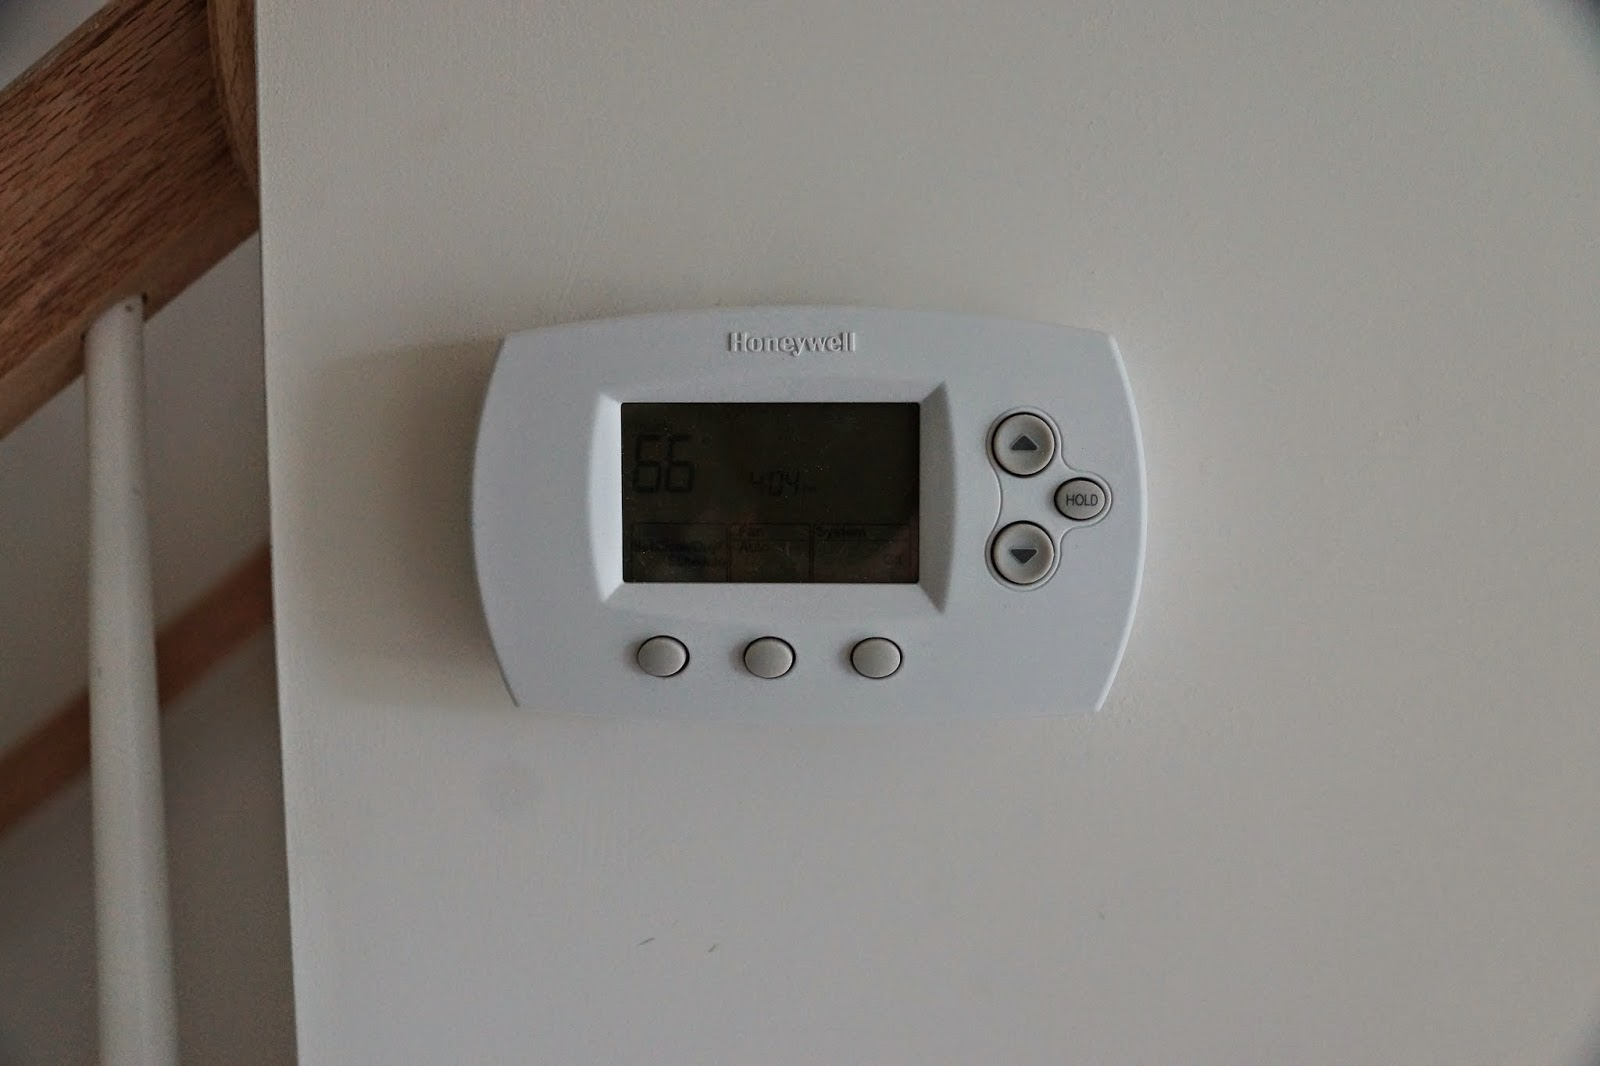 A Picture of the thermostat in the house